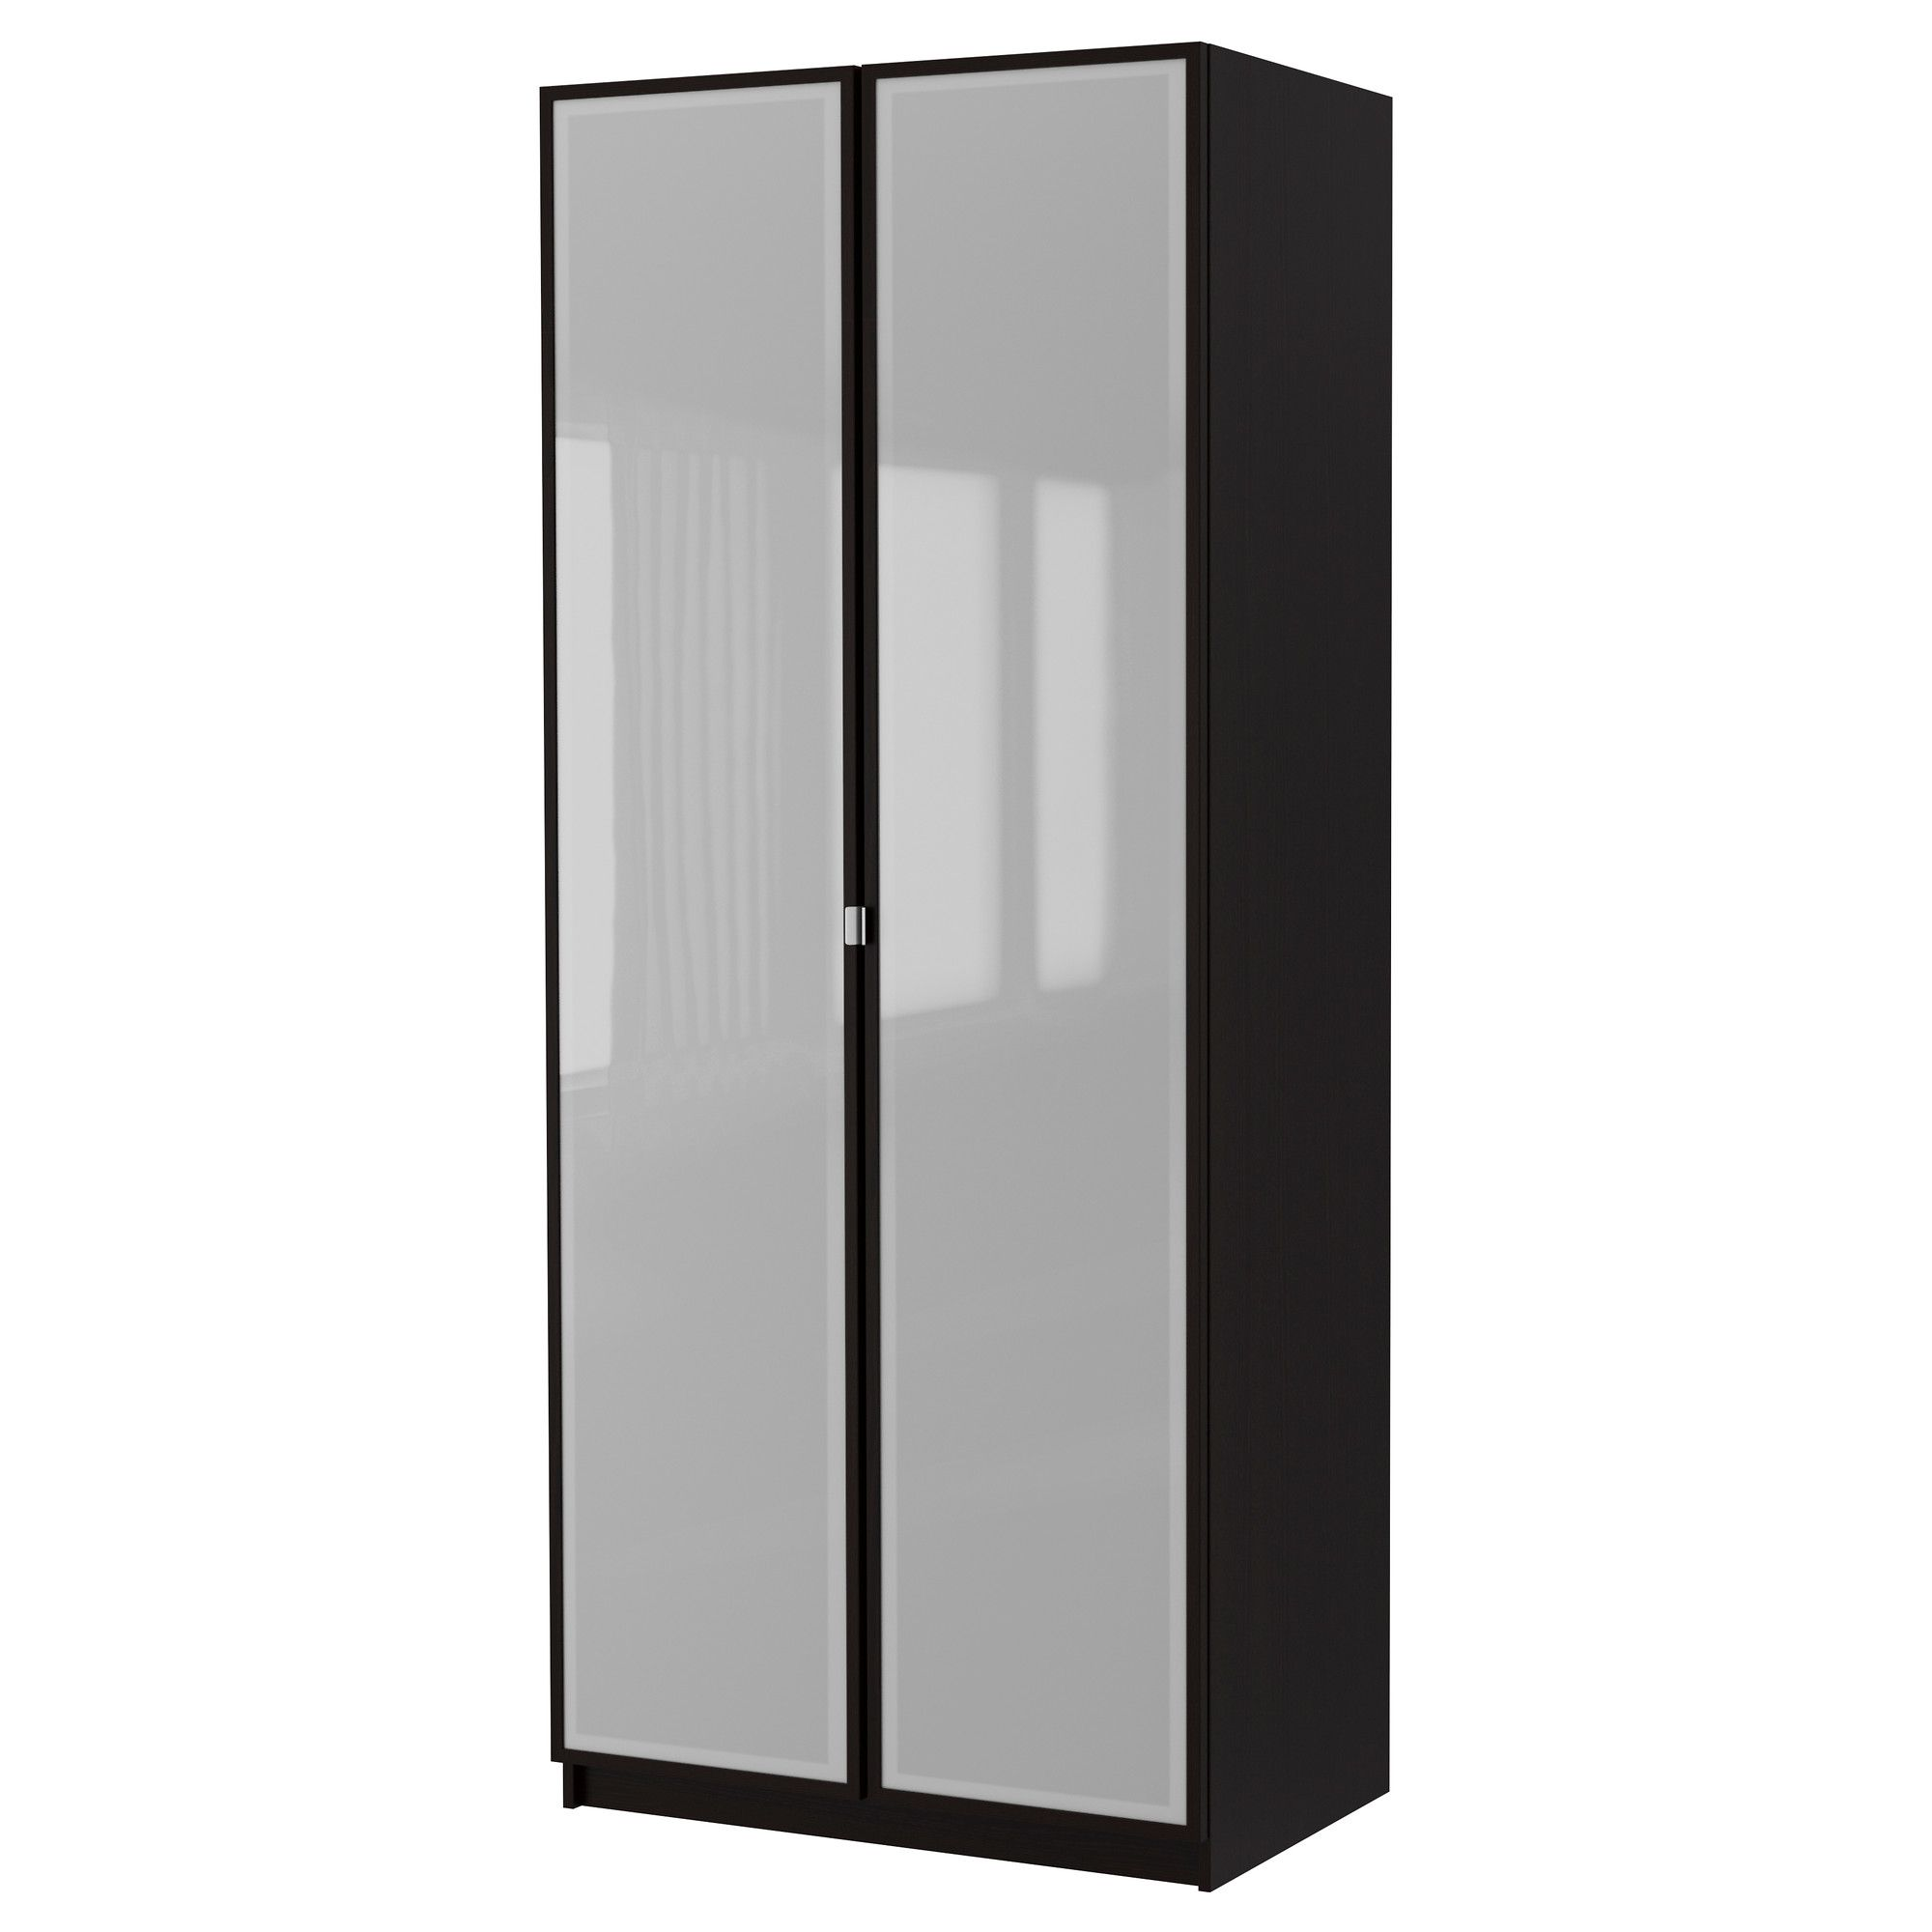 Pax Wardrobe With 2 Doors Fevik Black Brown Frosted Glass